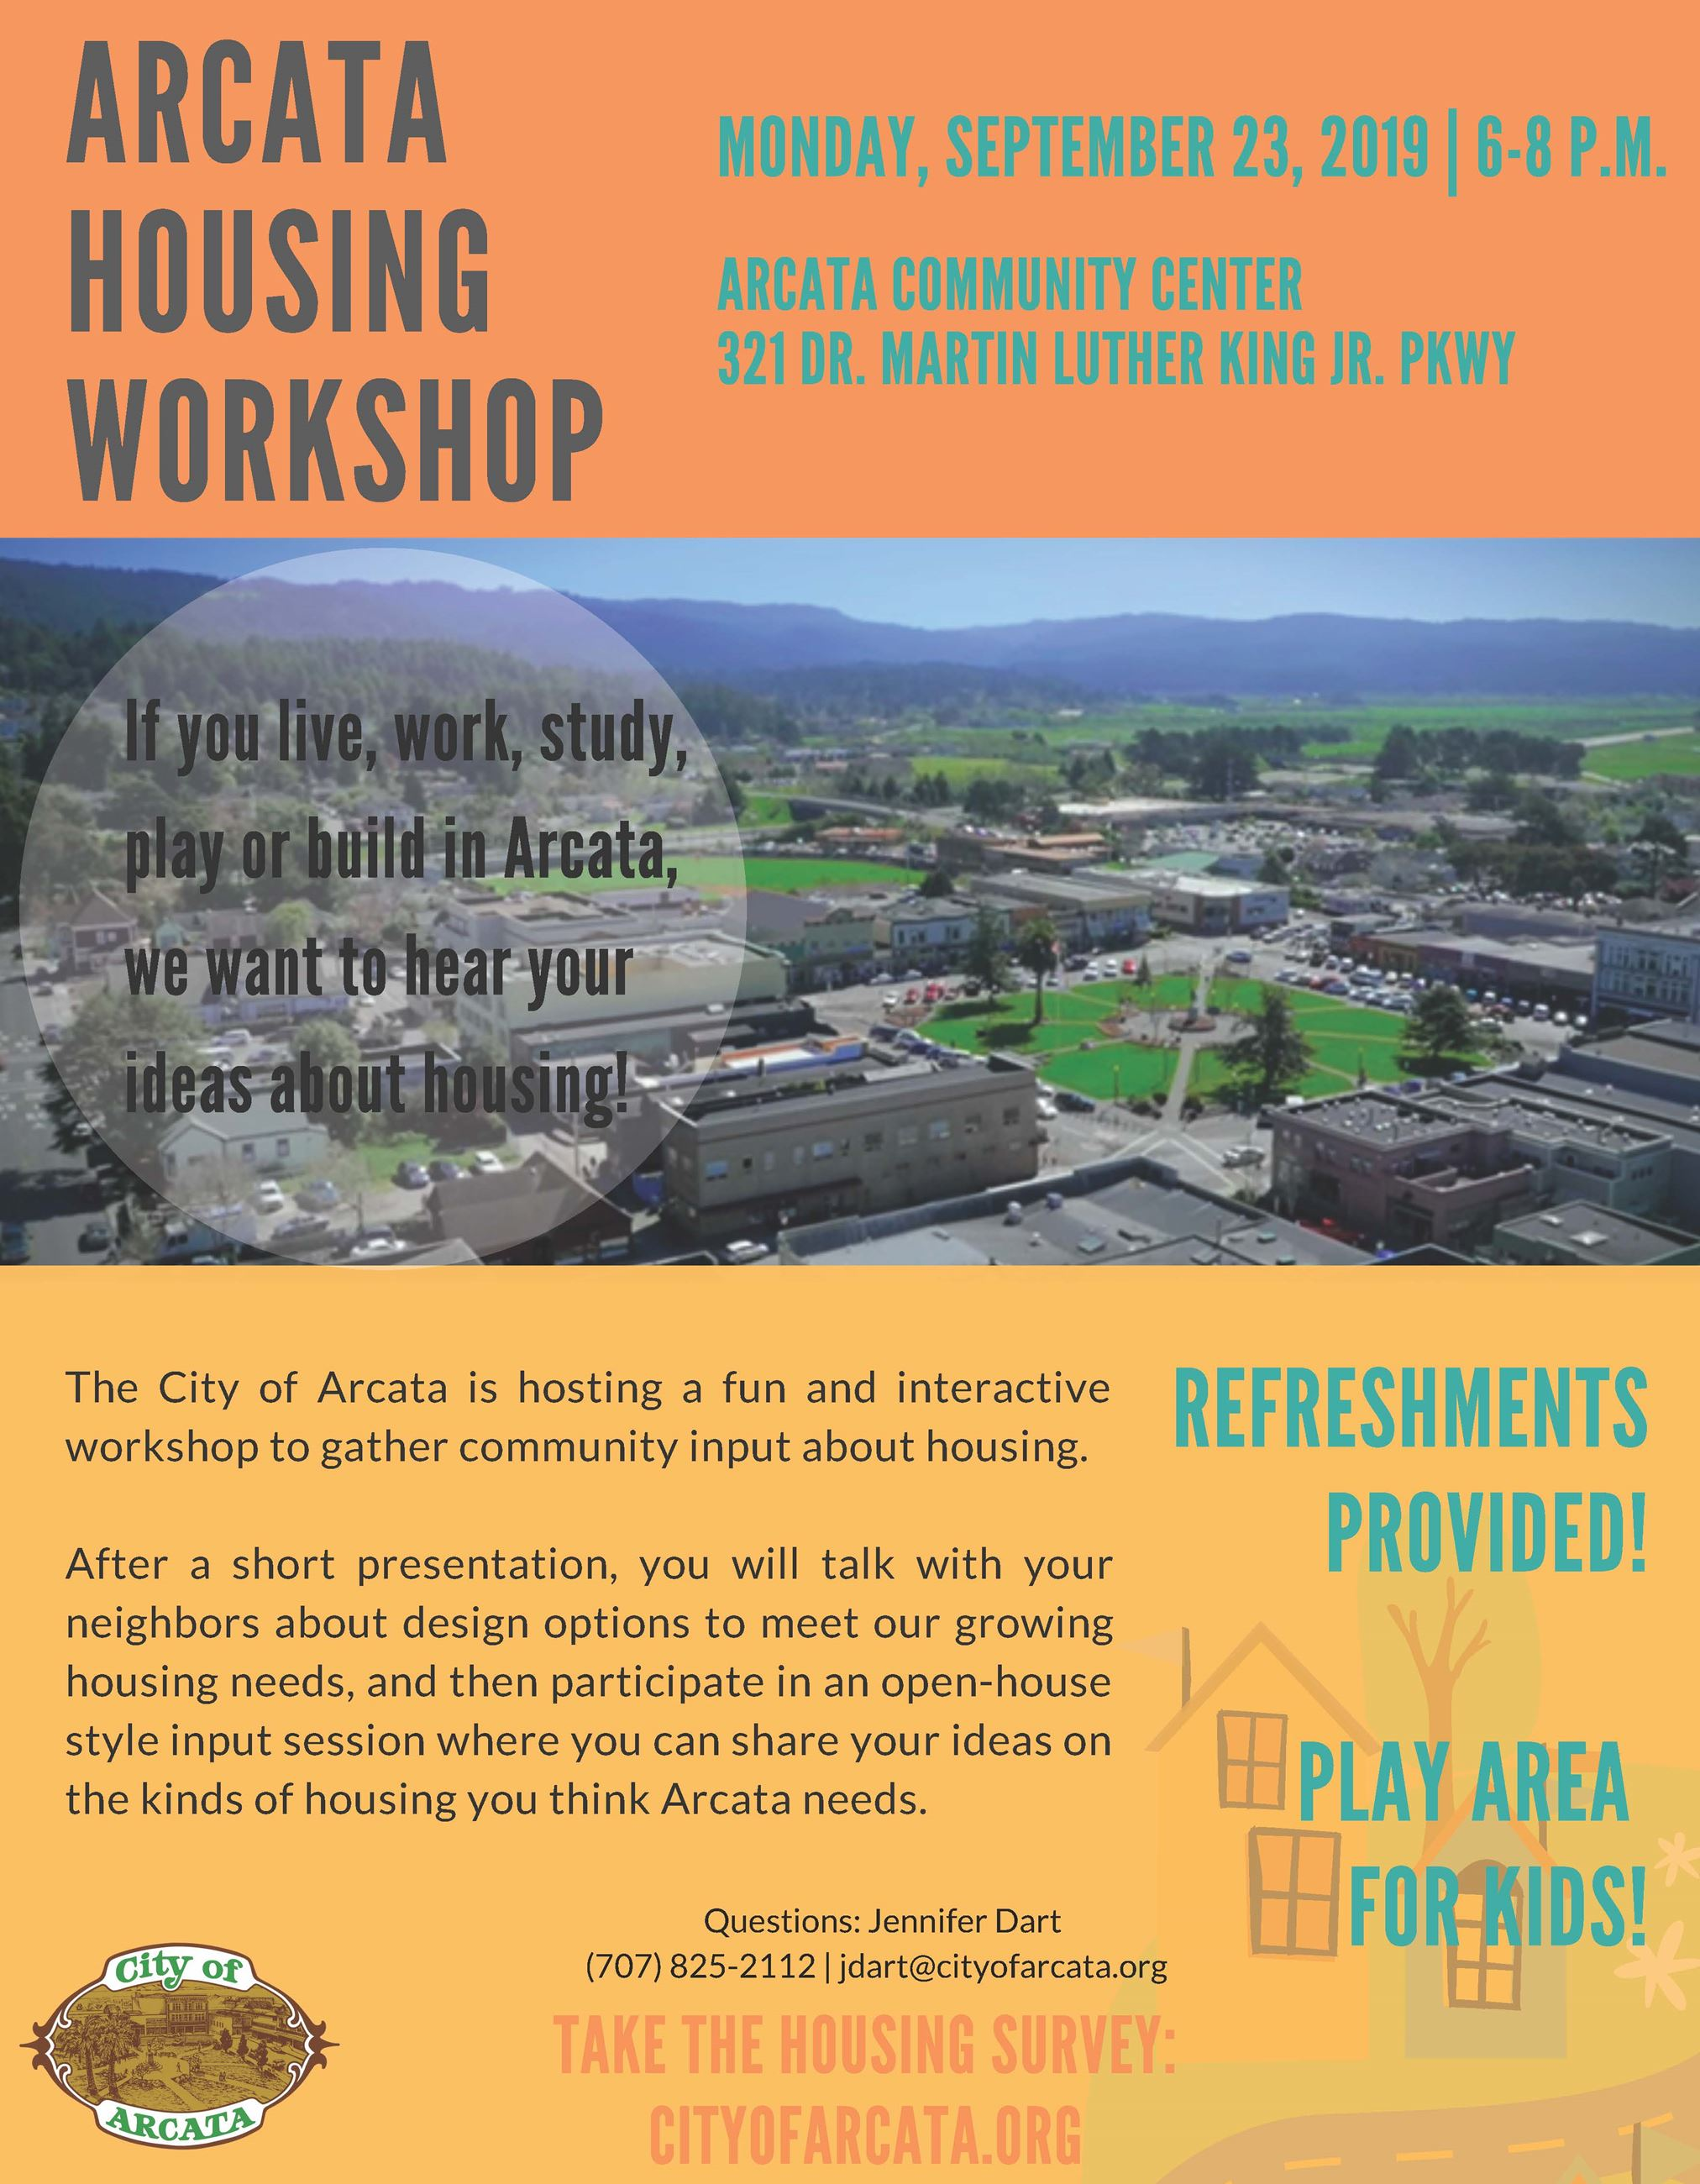 09.23.19 Housing Community Workshop Opens in new window